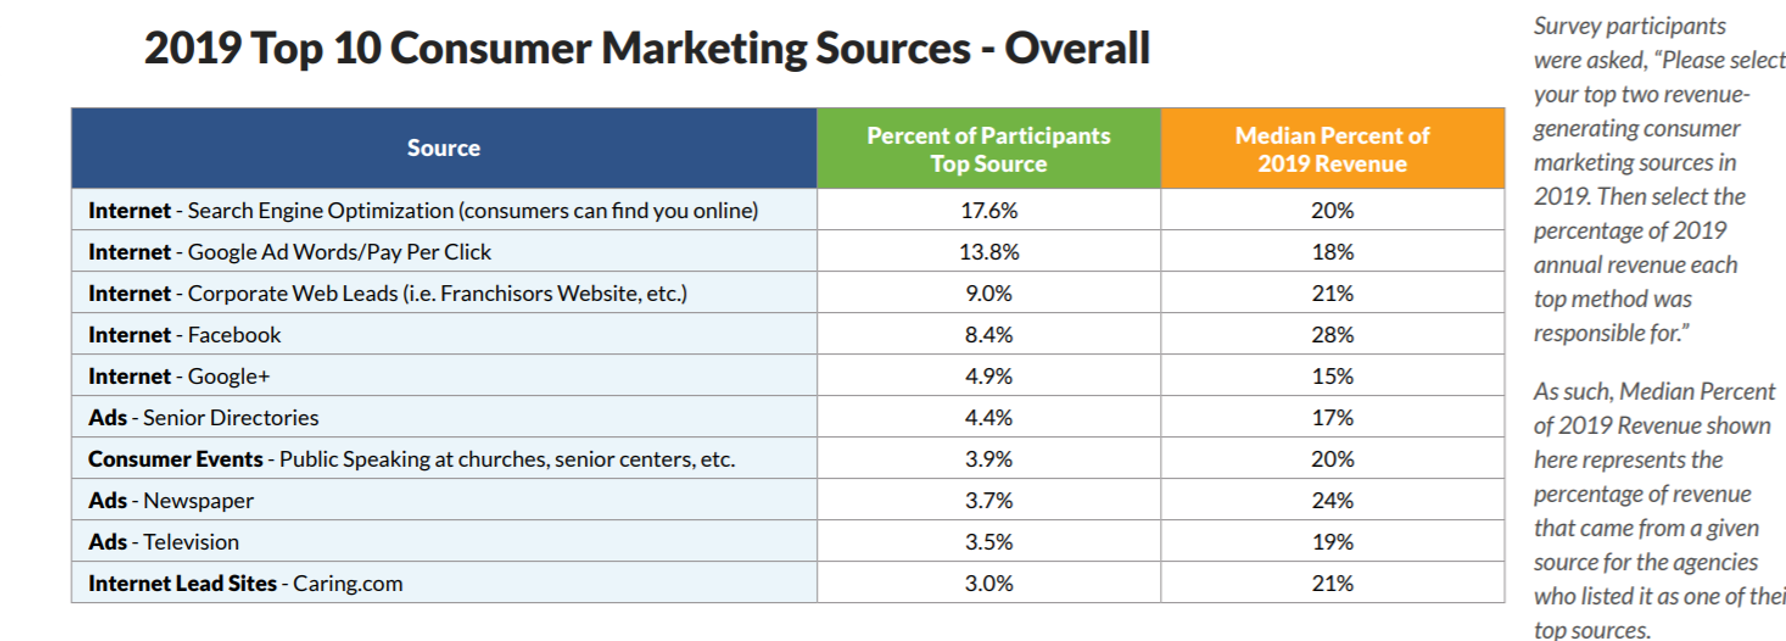 top consumer marketing sources for home care agencies